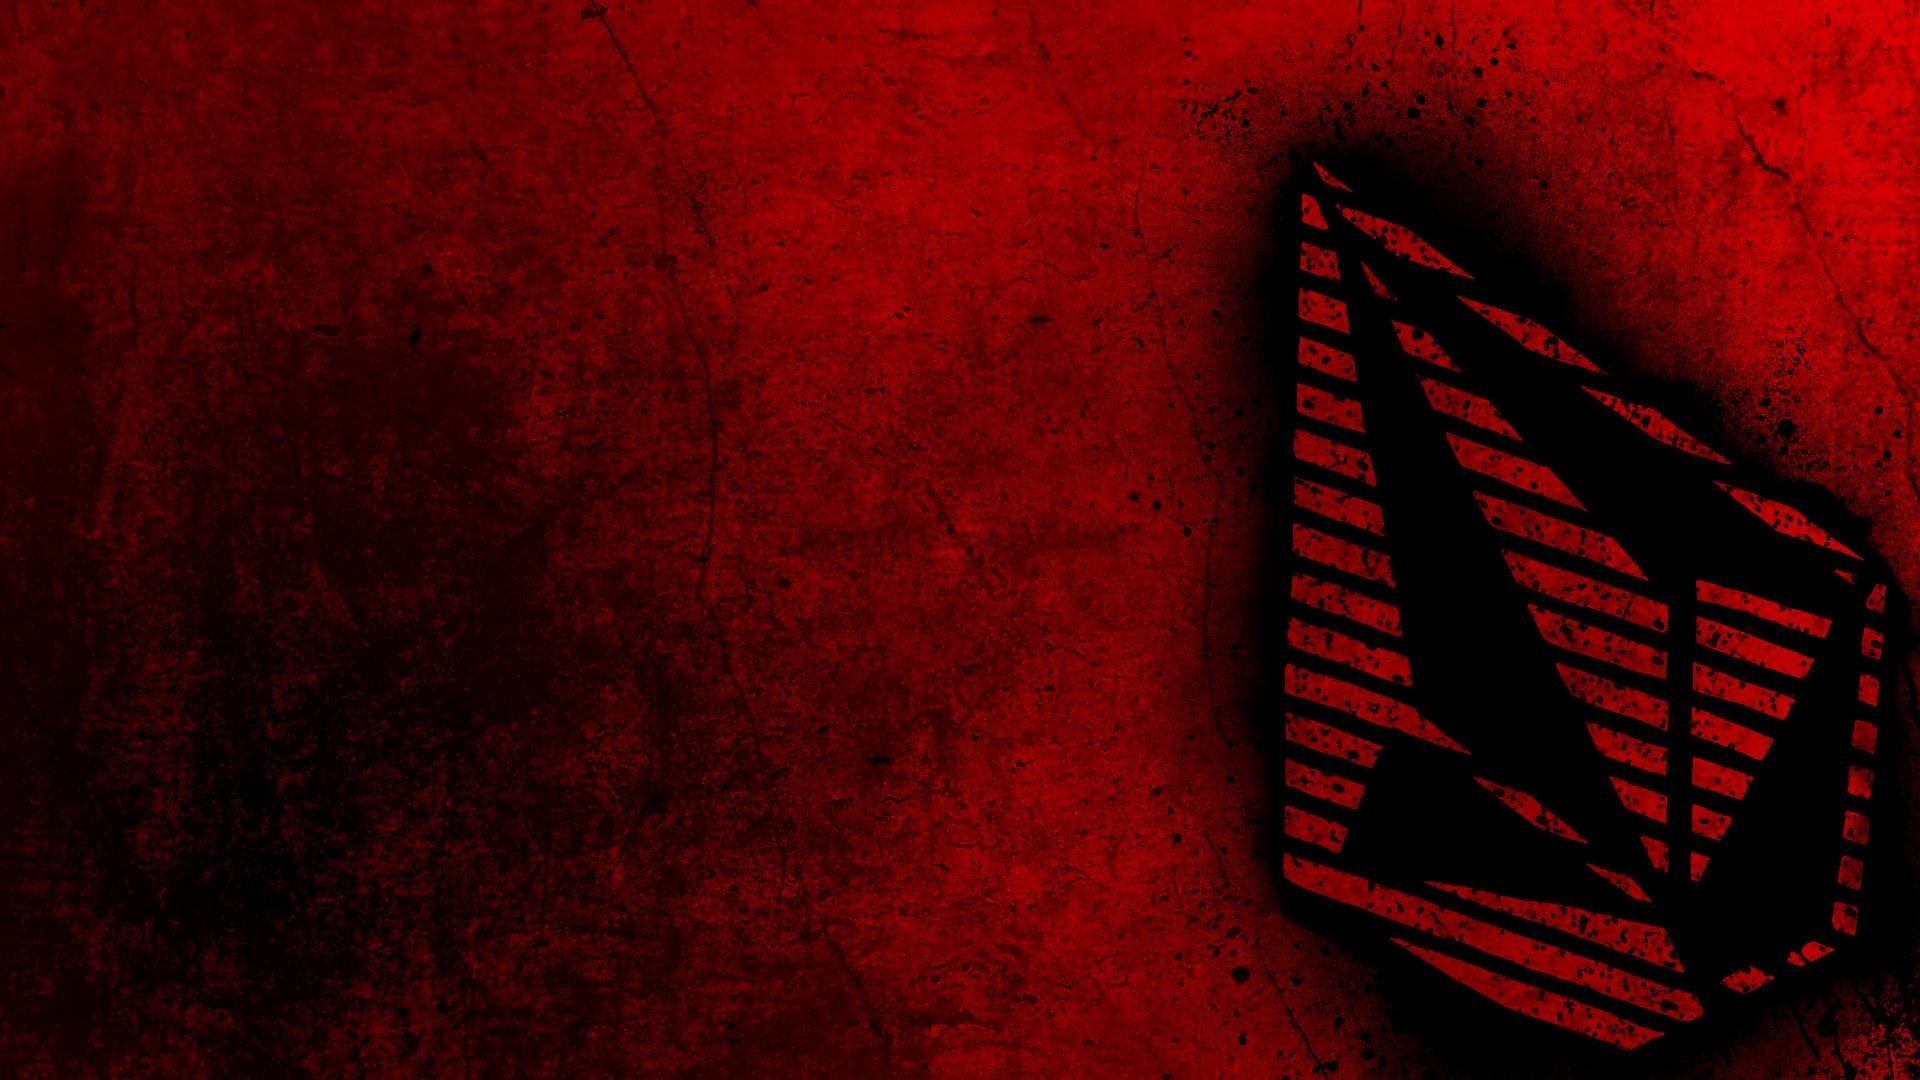 Res: 1920x1080, Wallpapers For > Volcom Logo Wallpaper Hd